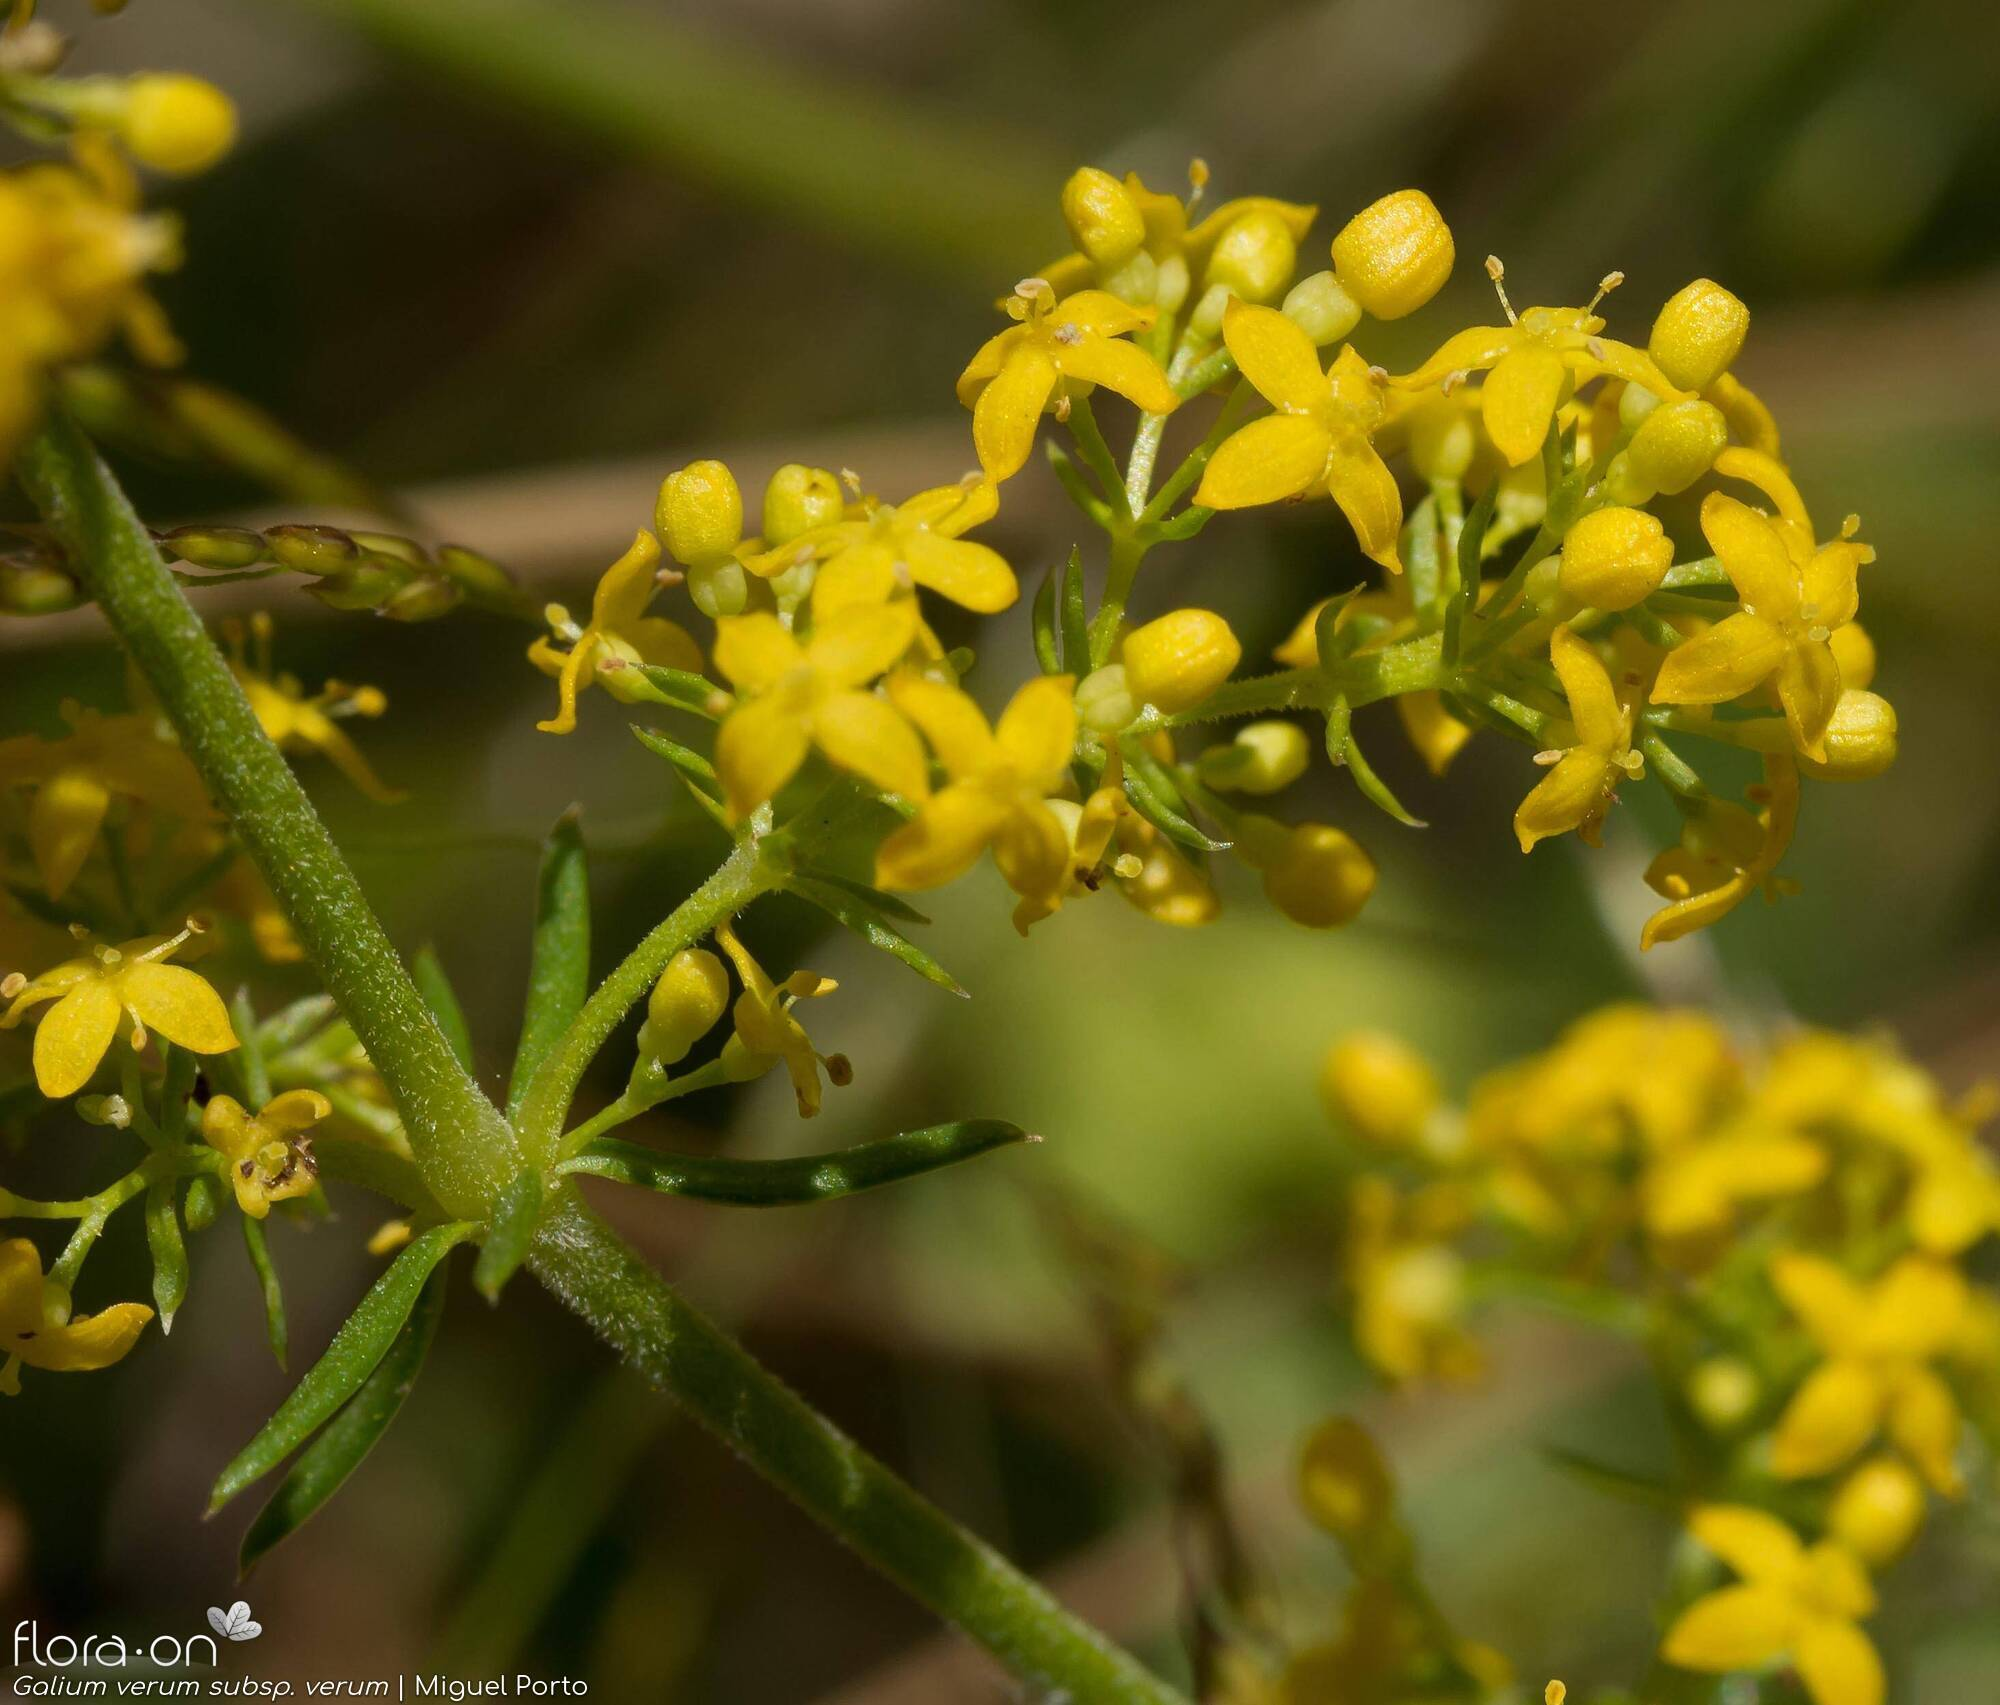 Galium verum verum - Flor (close-up) | Miguel Porto; CC BY-NC 4.0